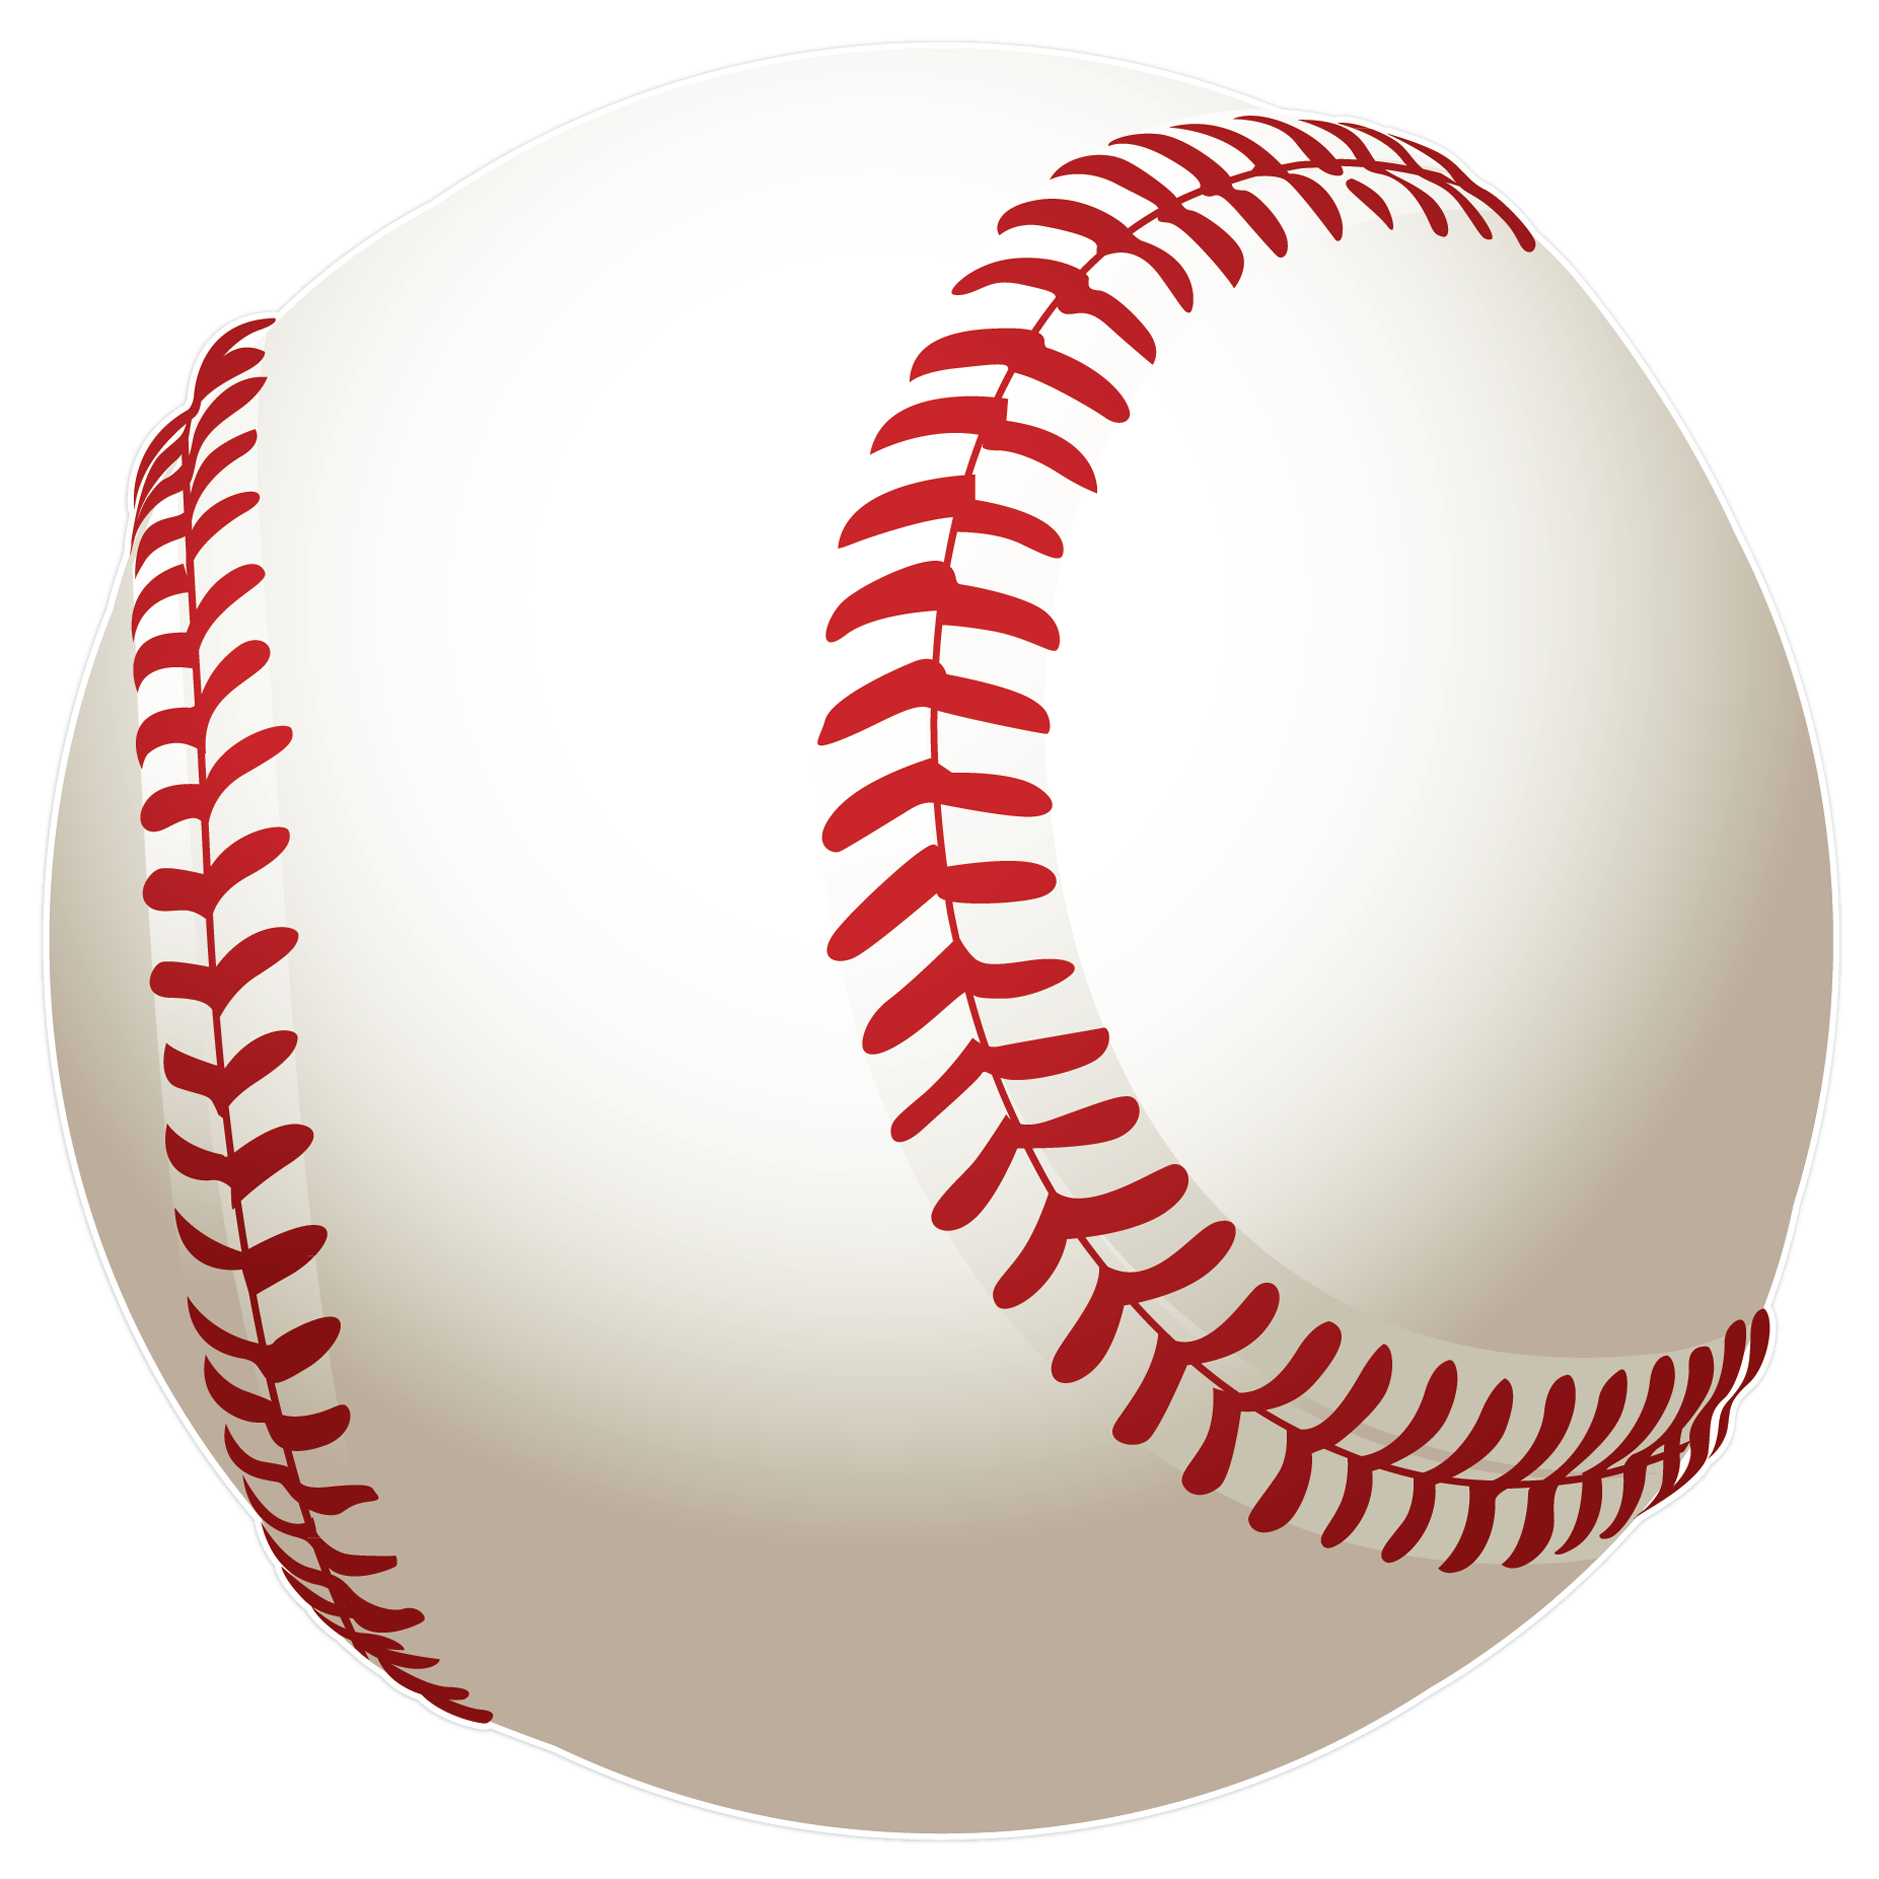 Ball clipart transparent background. Baseball hd png images